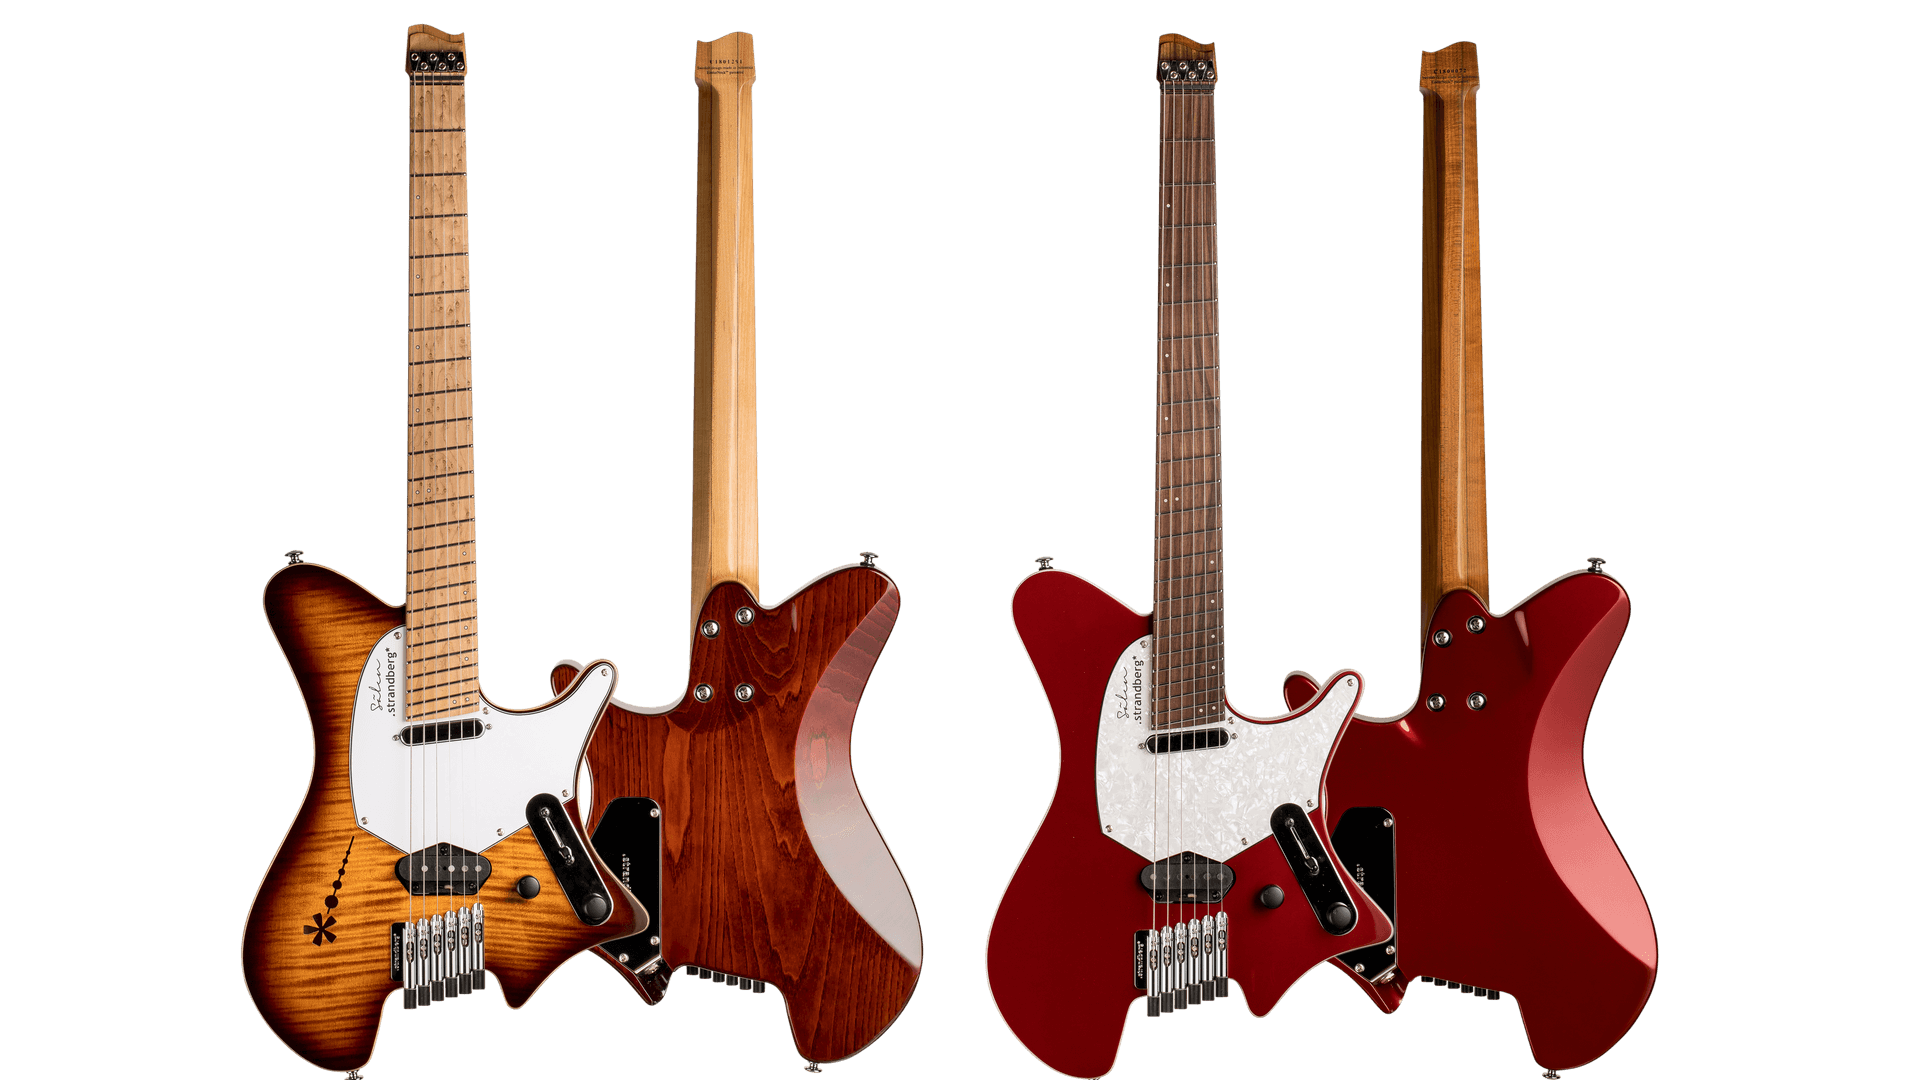 Sälen deluxe family photo vintage burst & candy apple red 6 string